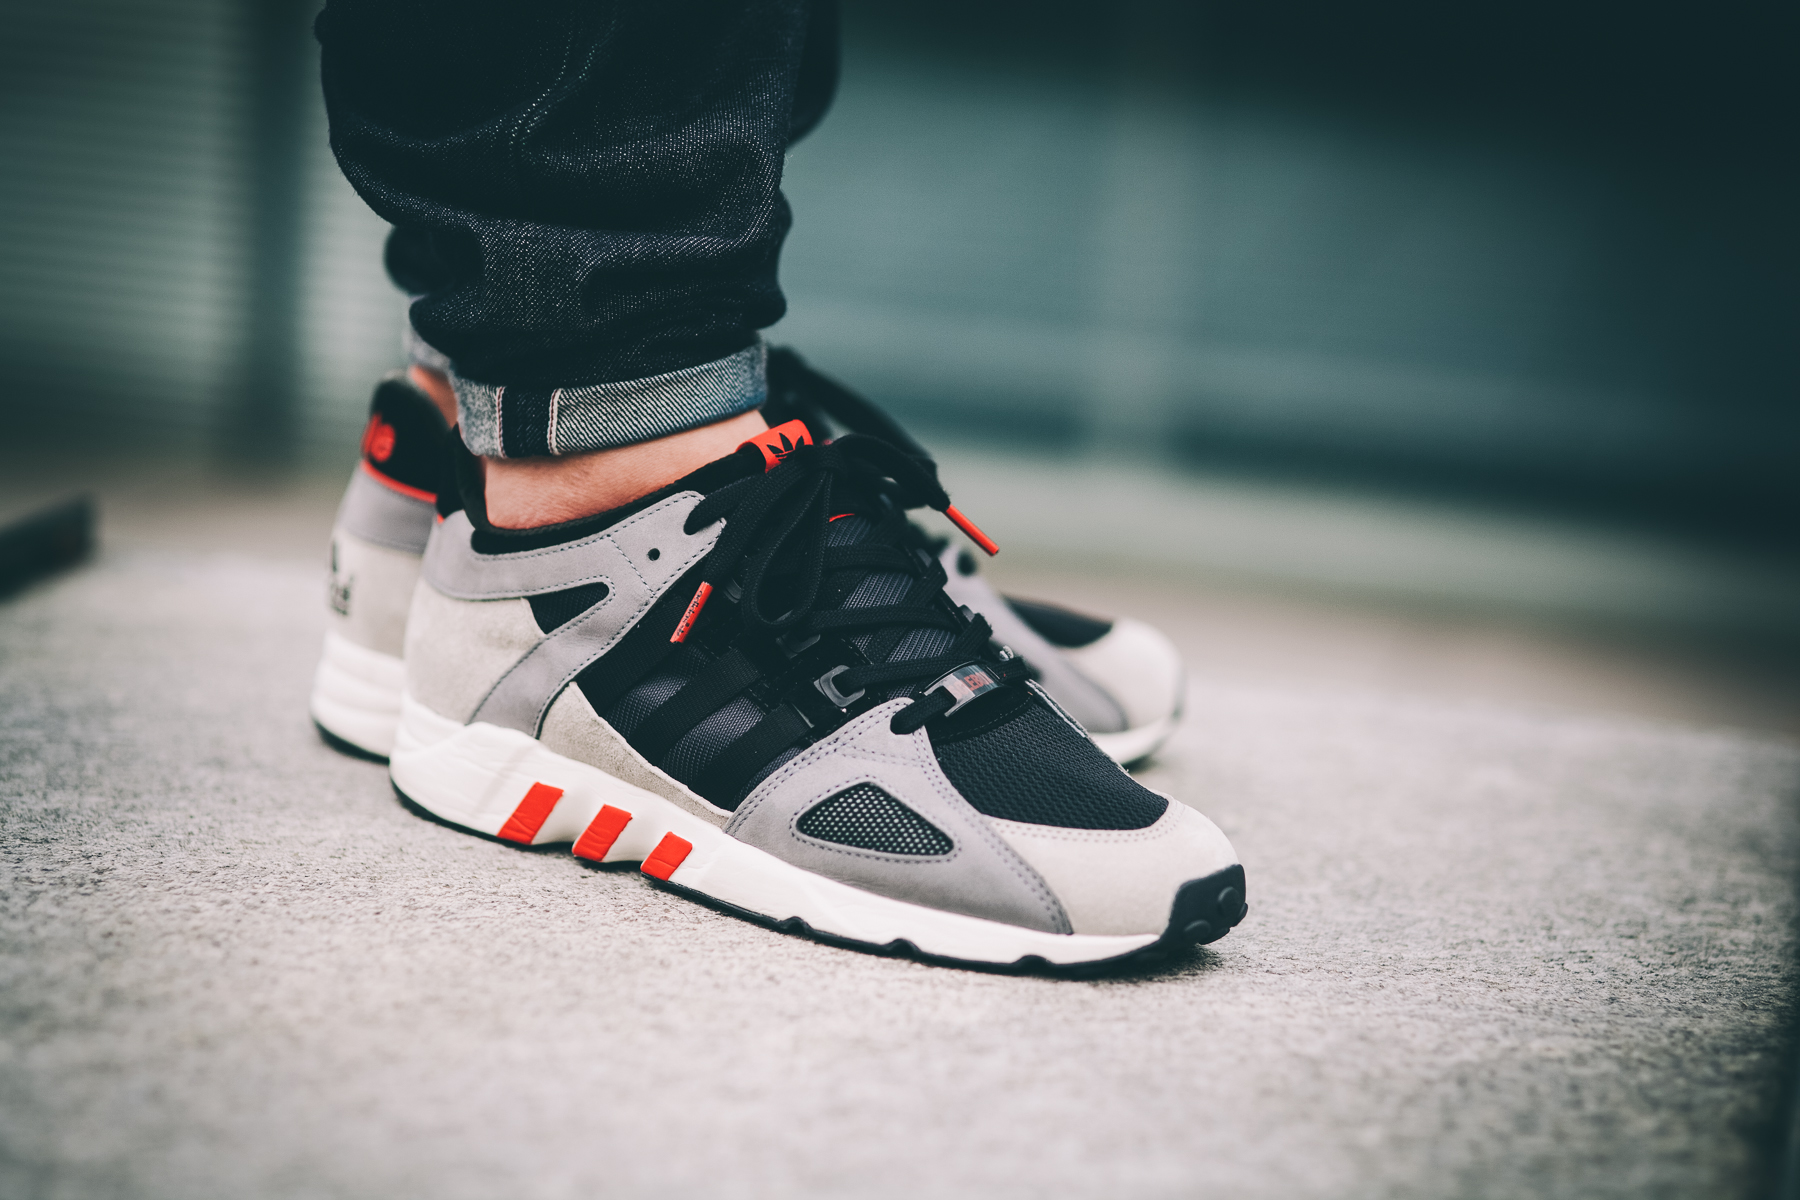 Solebox x adidas Consortium Guidance 93 5